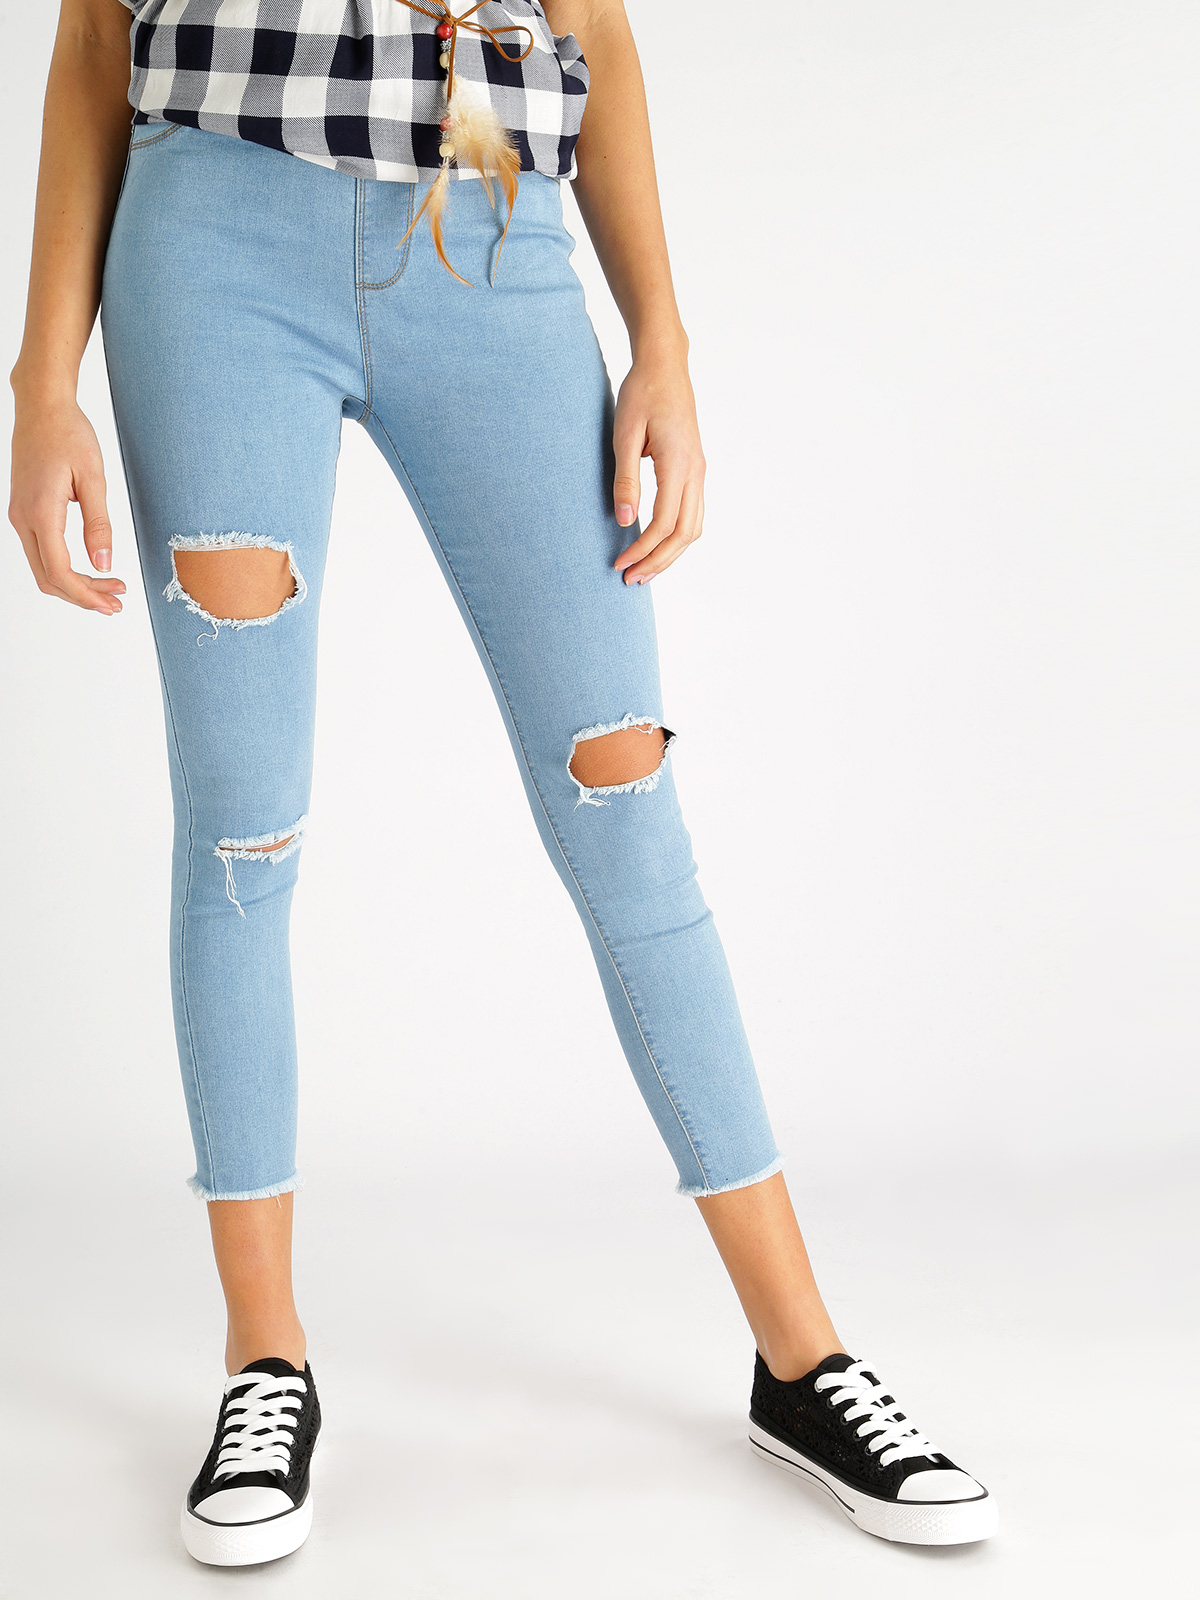 Jeggings Ripped Fringed